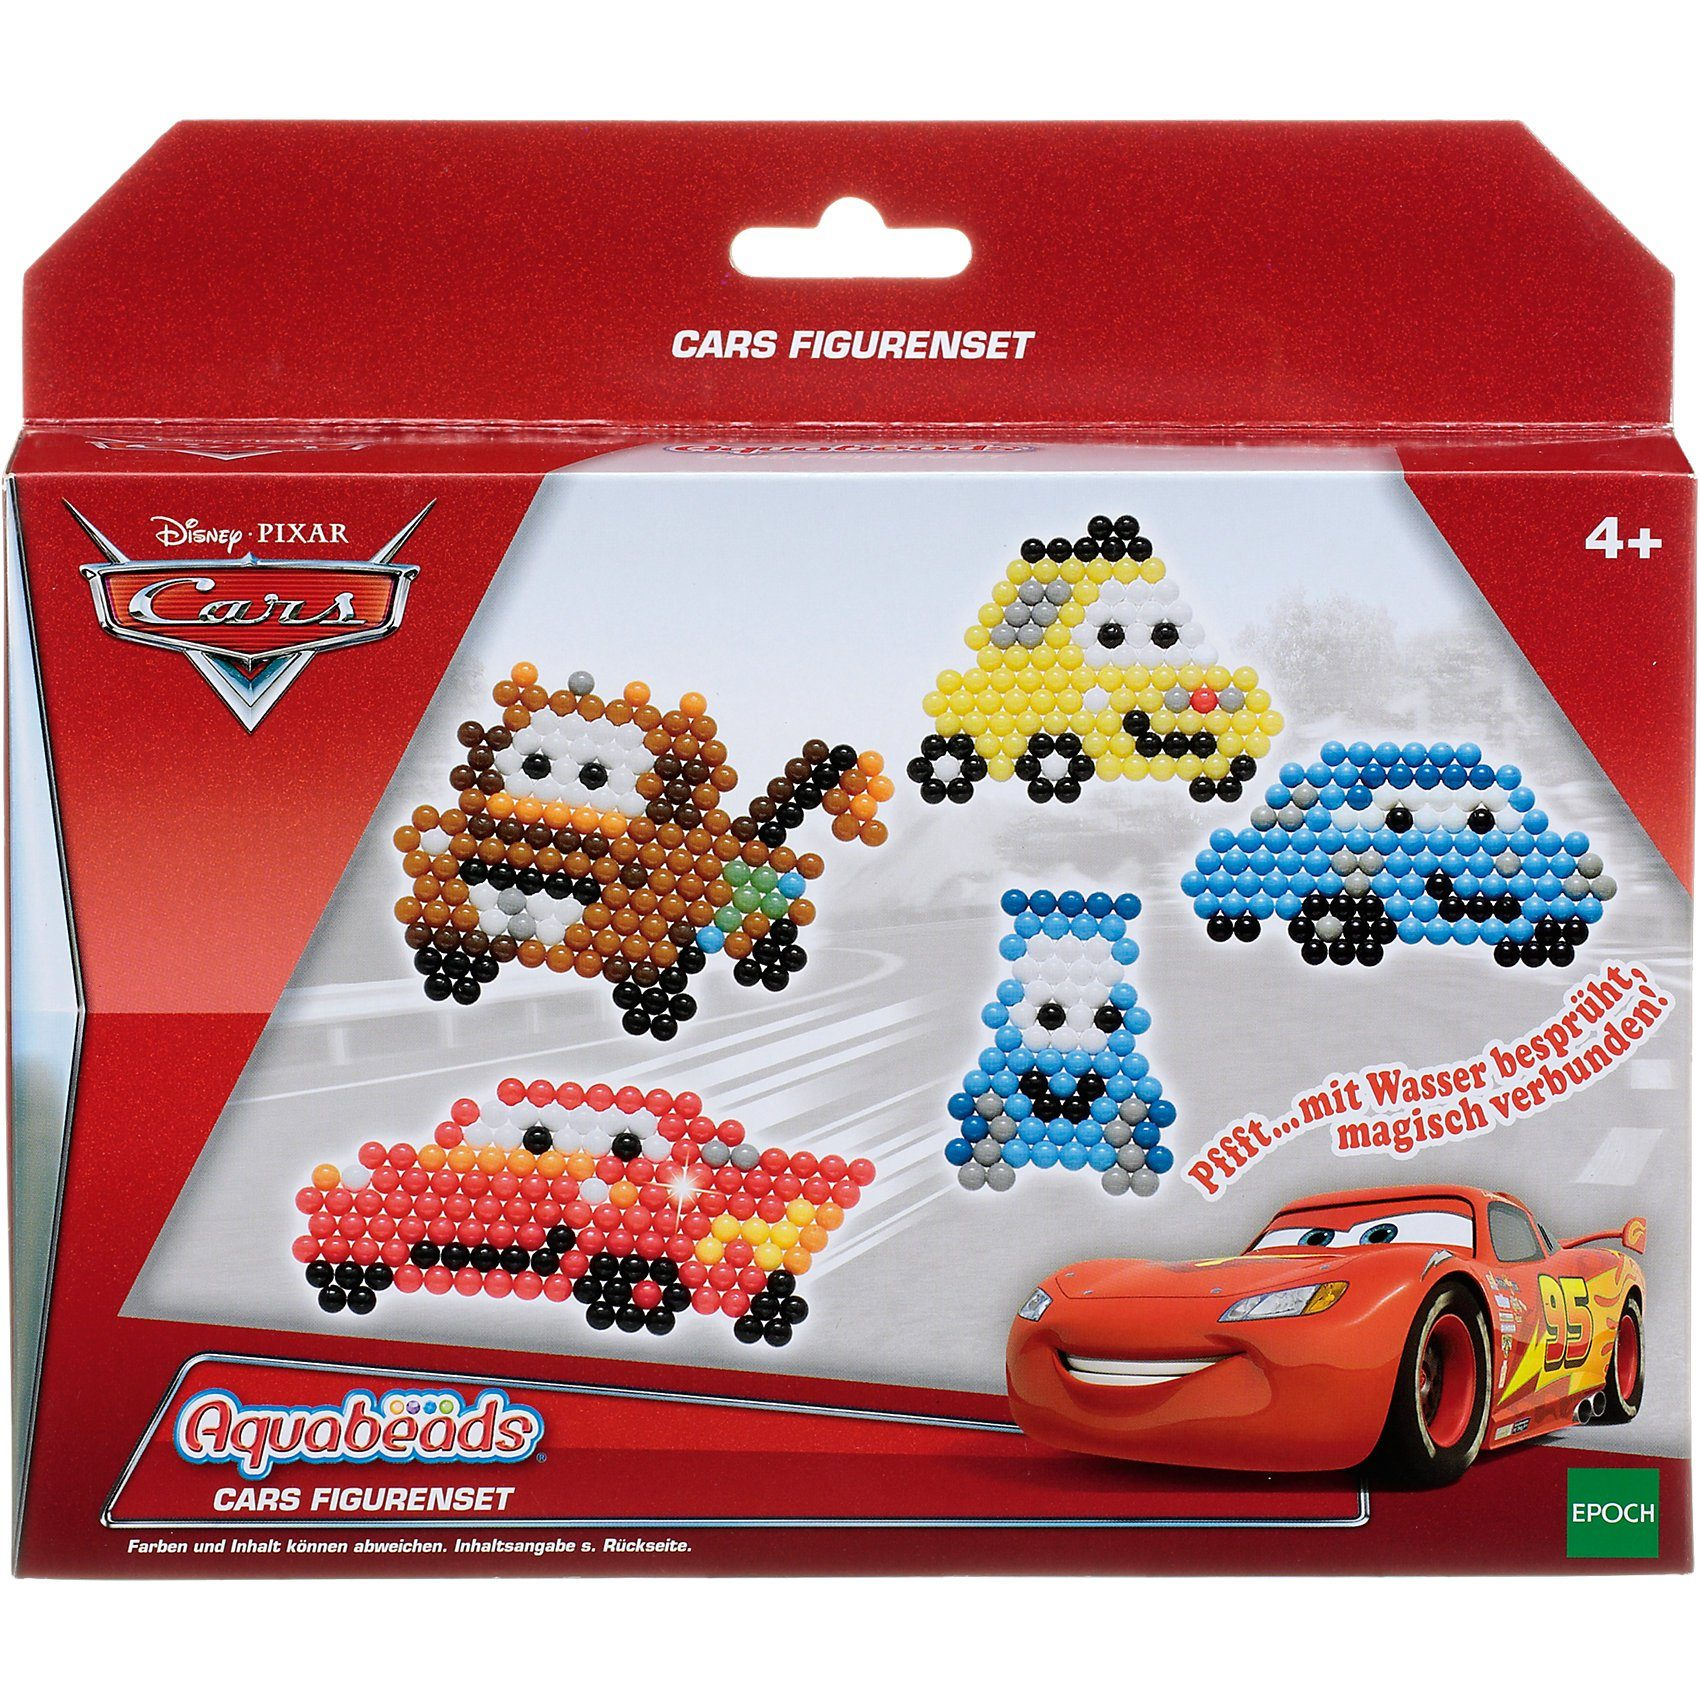 Epoch Traumwiesen Aquabeads Cars Figurenset